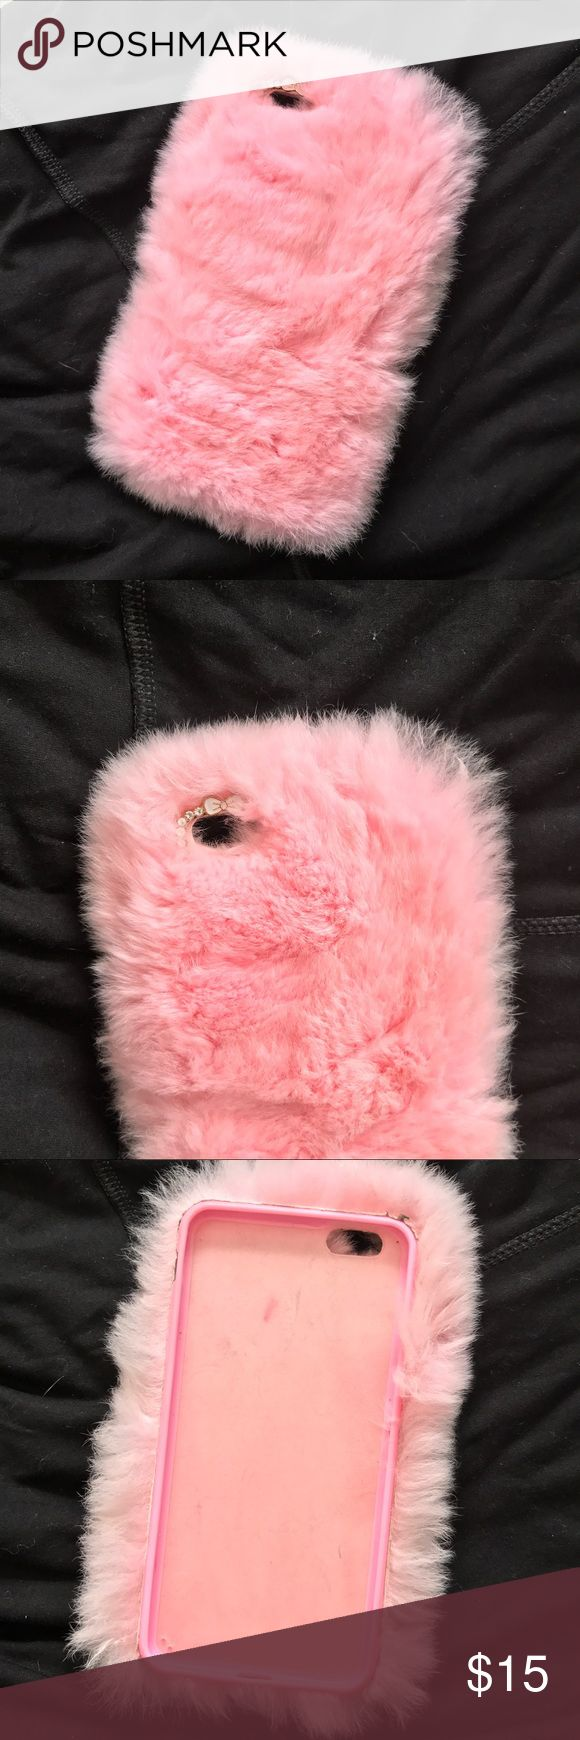 Pink Furry iPhone 6  Case Pink Furry iPhone 6  case. Small rhinestone bow detailing around camera. This phone case is so soft and cute. Only selling because I upgraded my phone Accessories Phone Cases